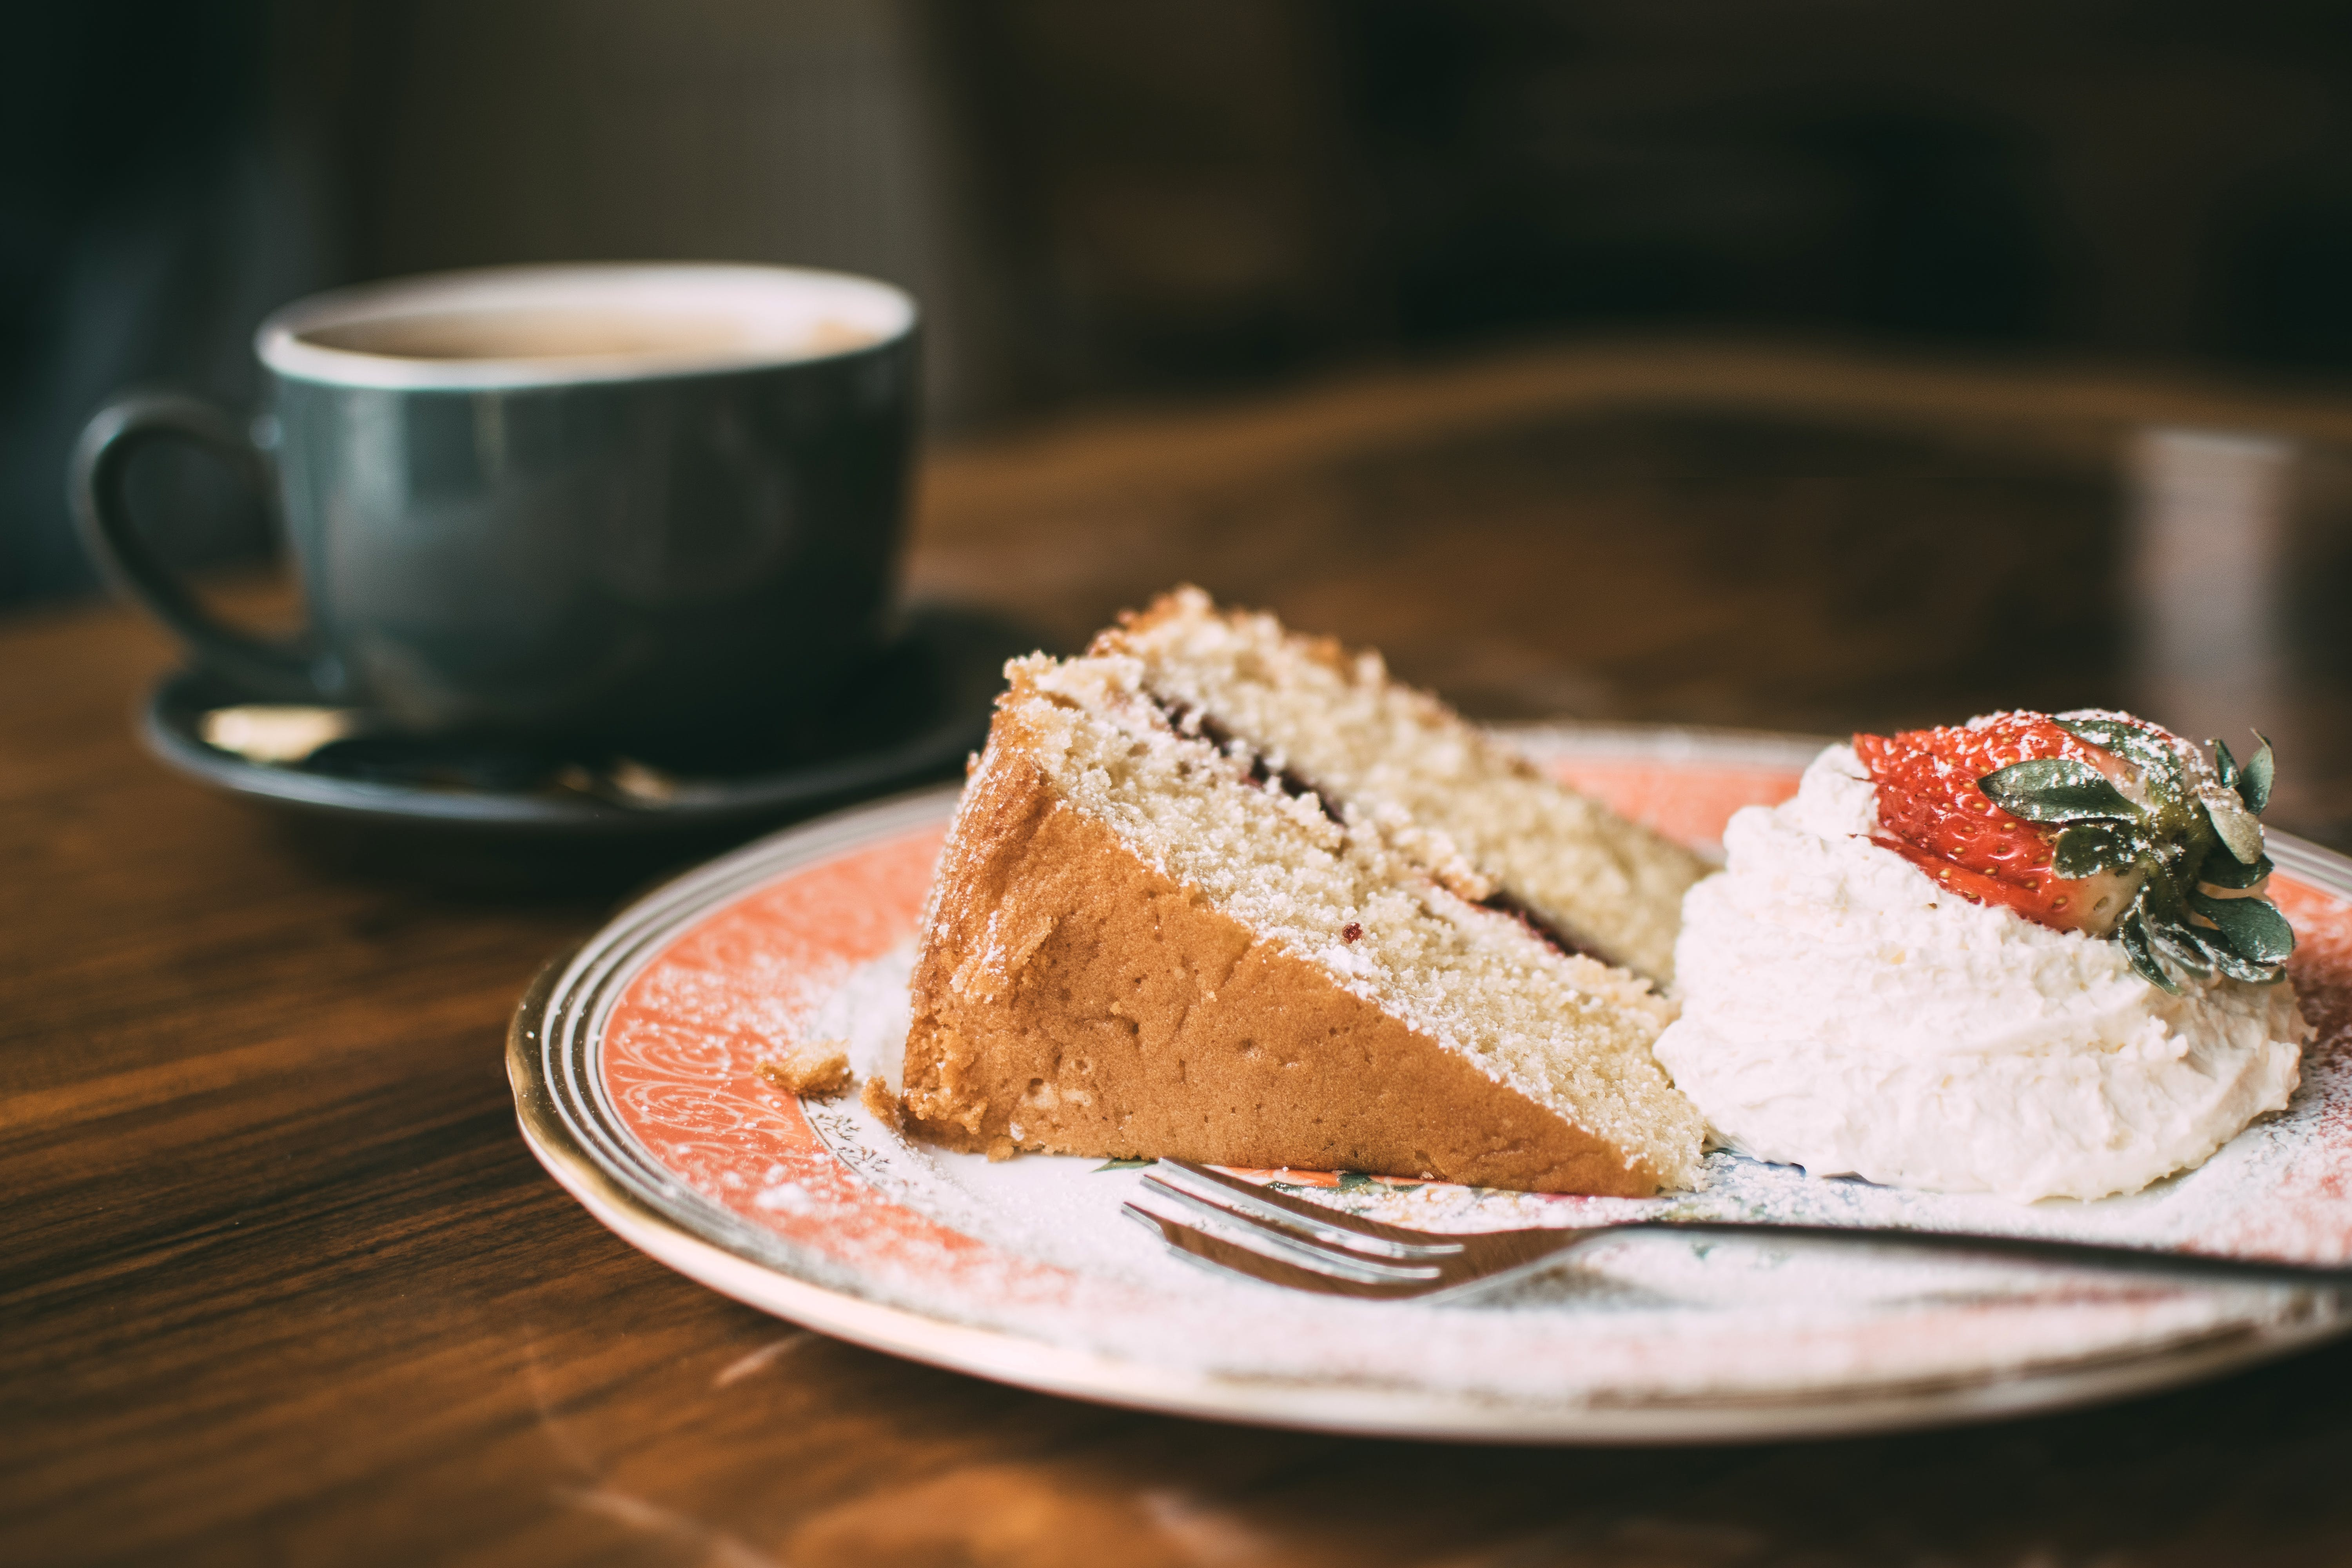 Photo of Sliced Cake on Ceramic Plate